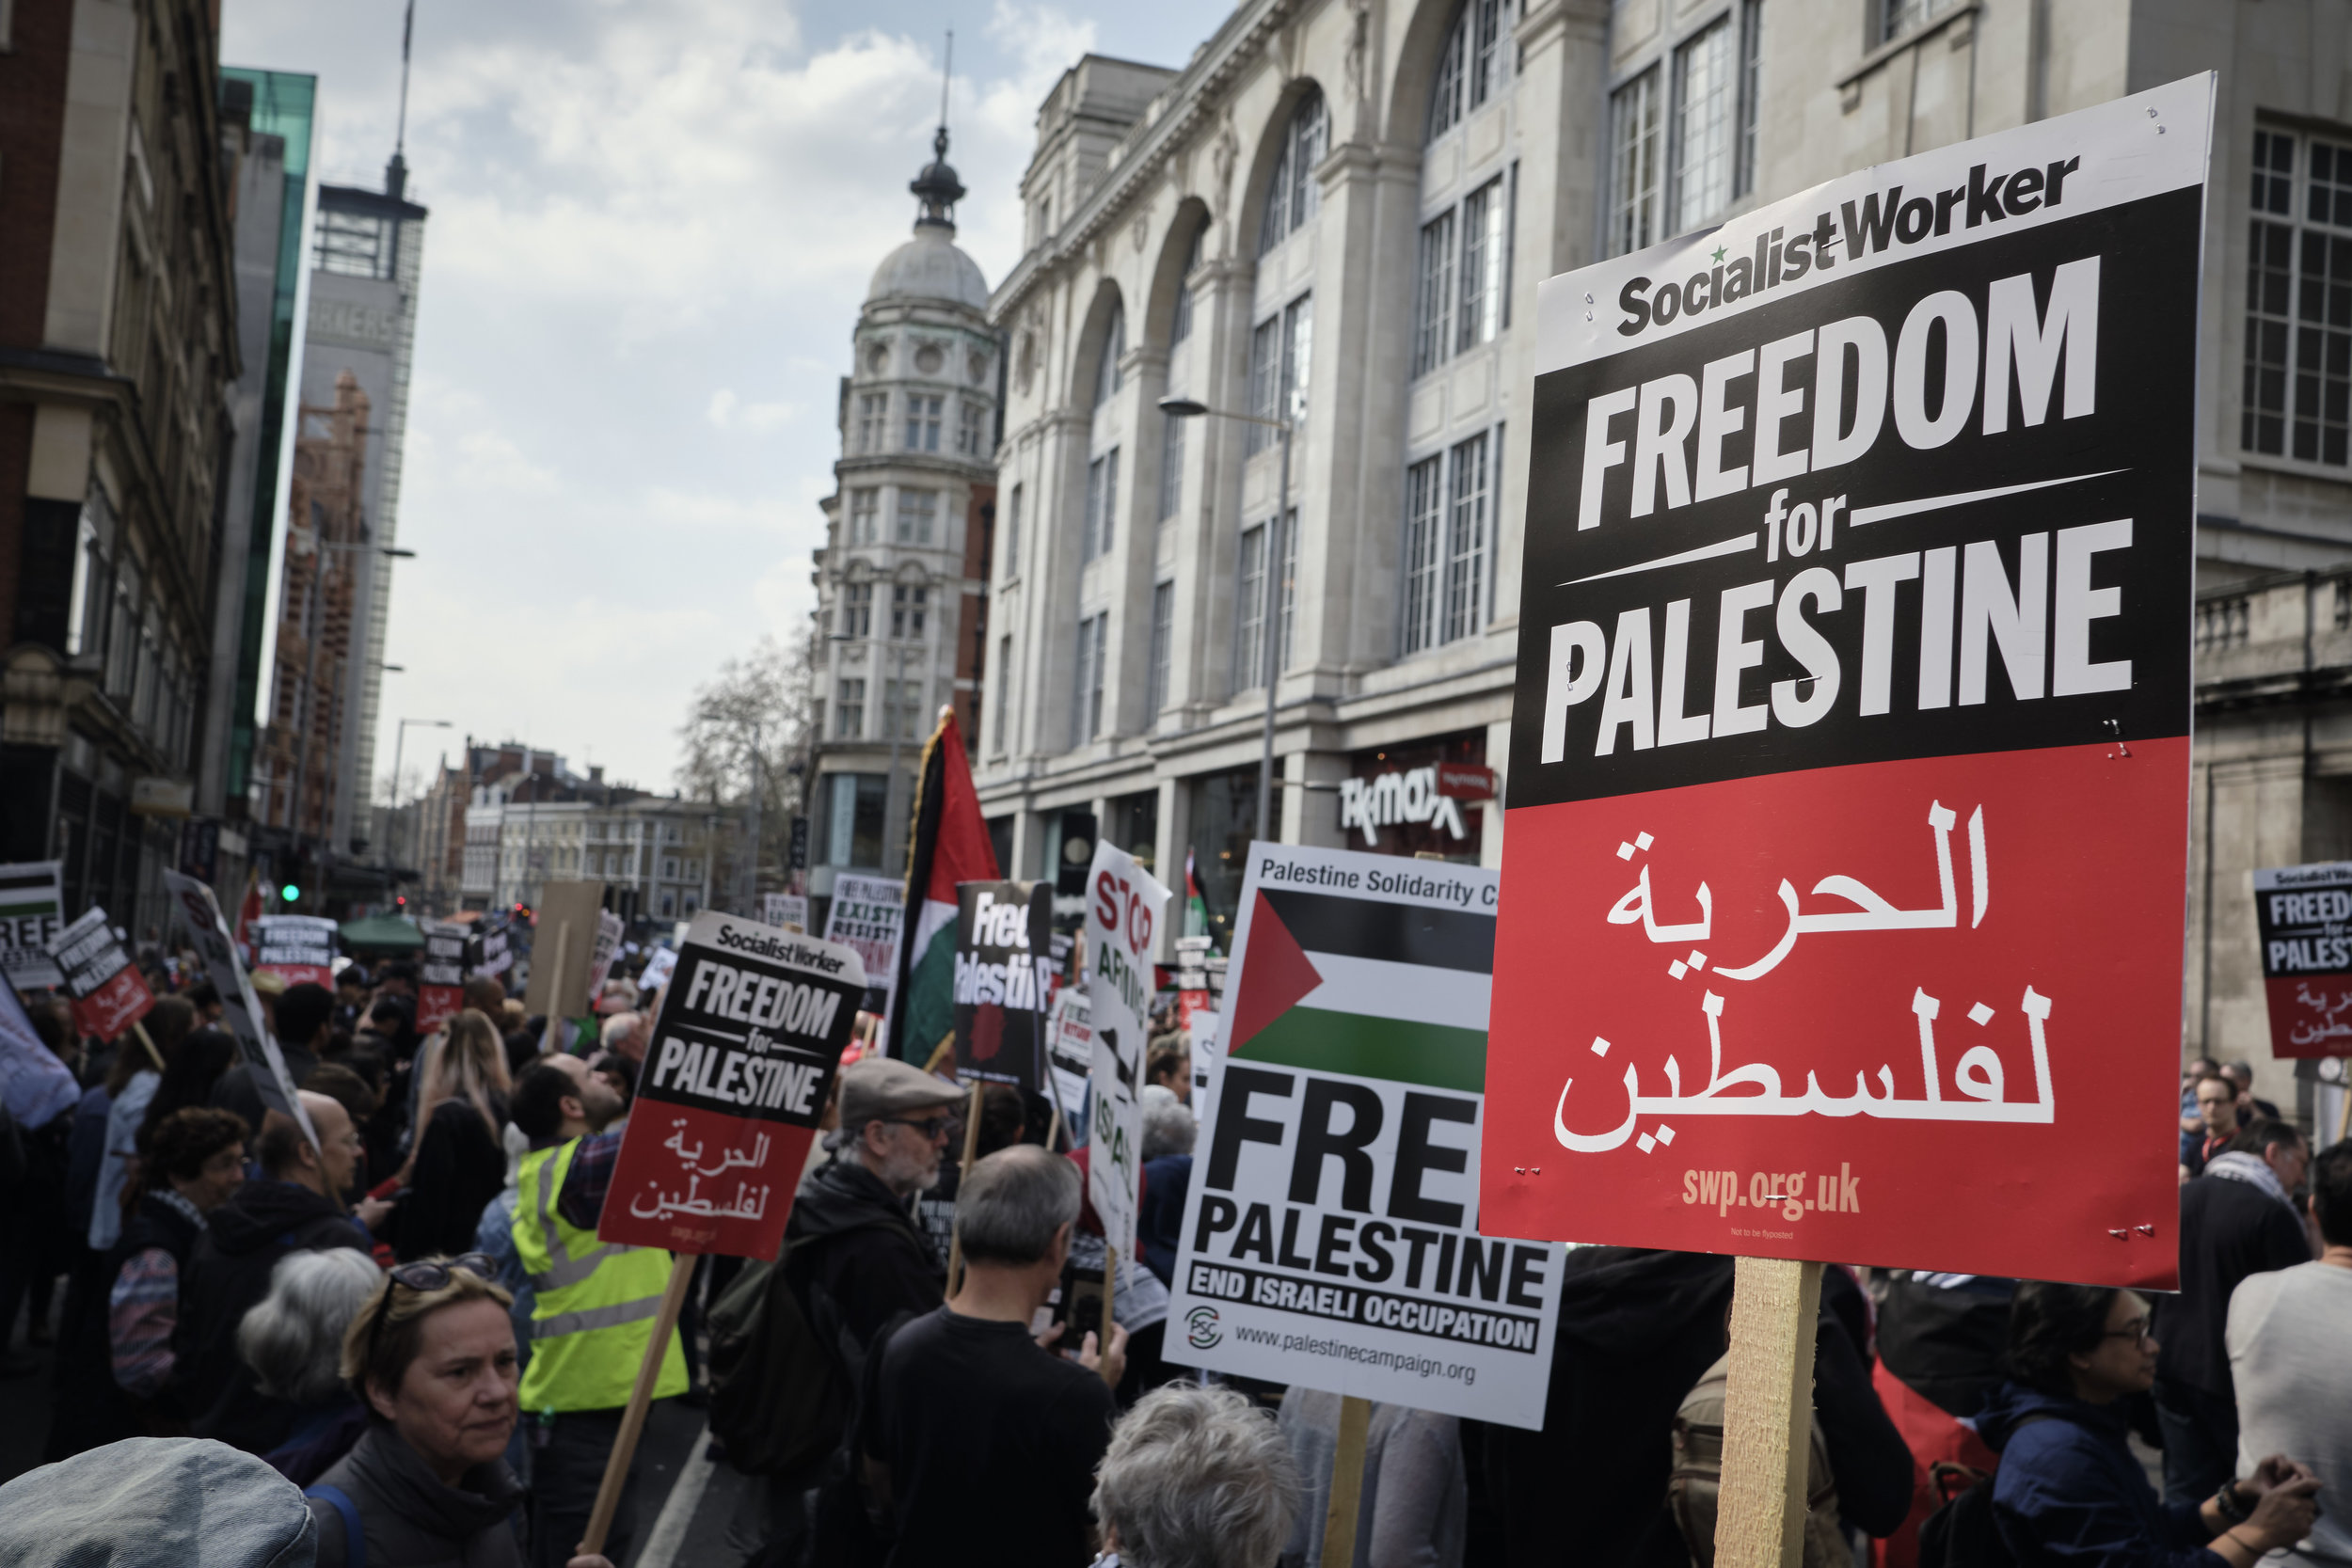 Protest for Palestine in front of Israeli, London. 30th March 2019.